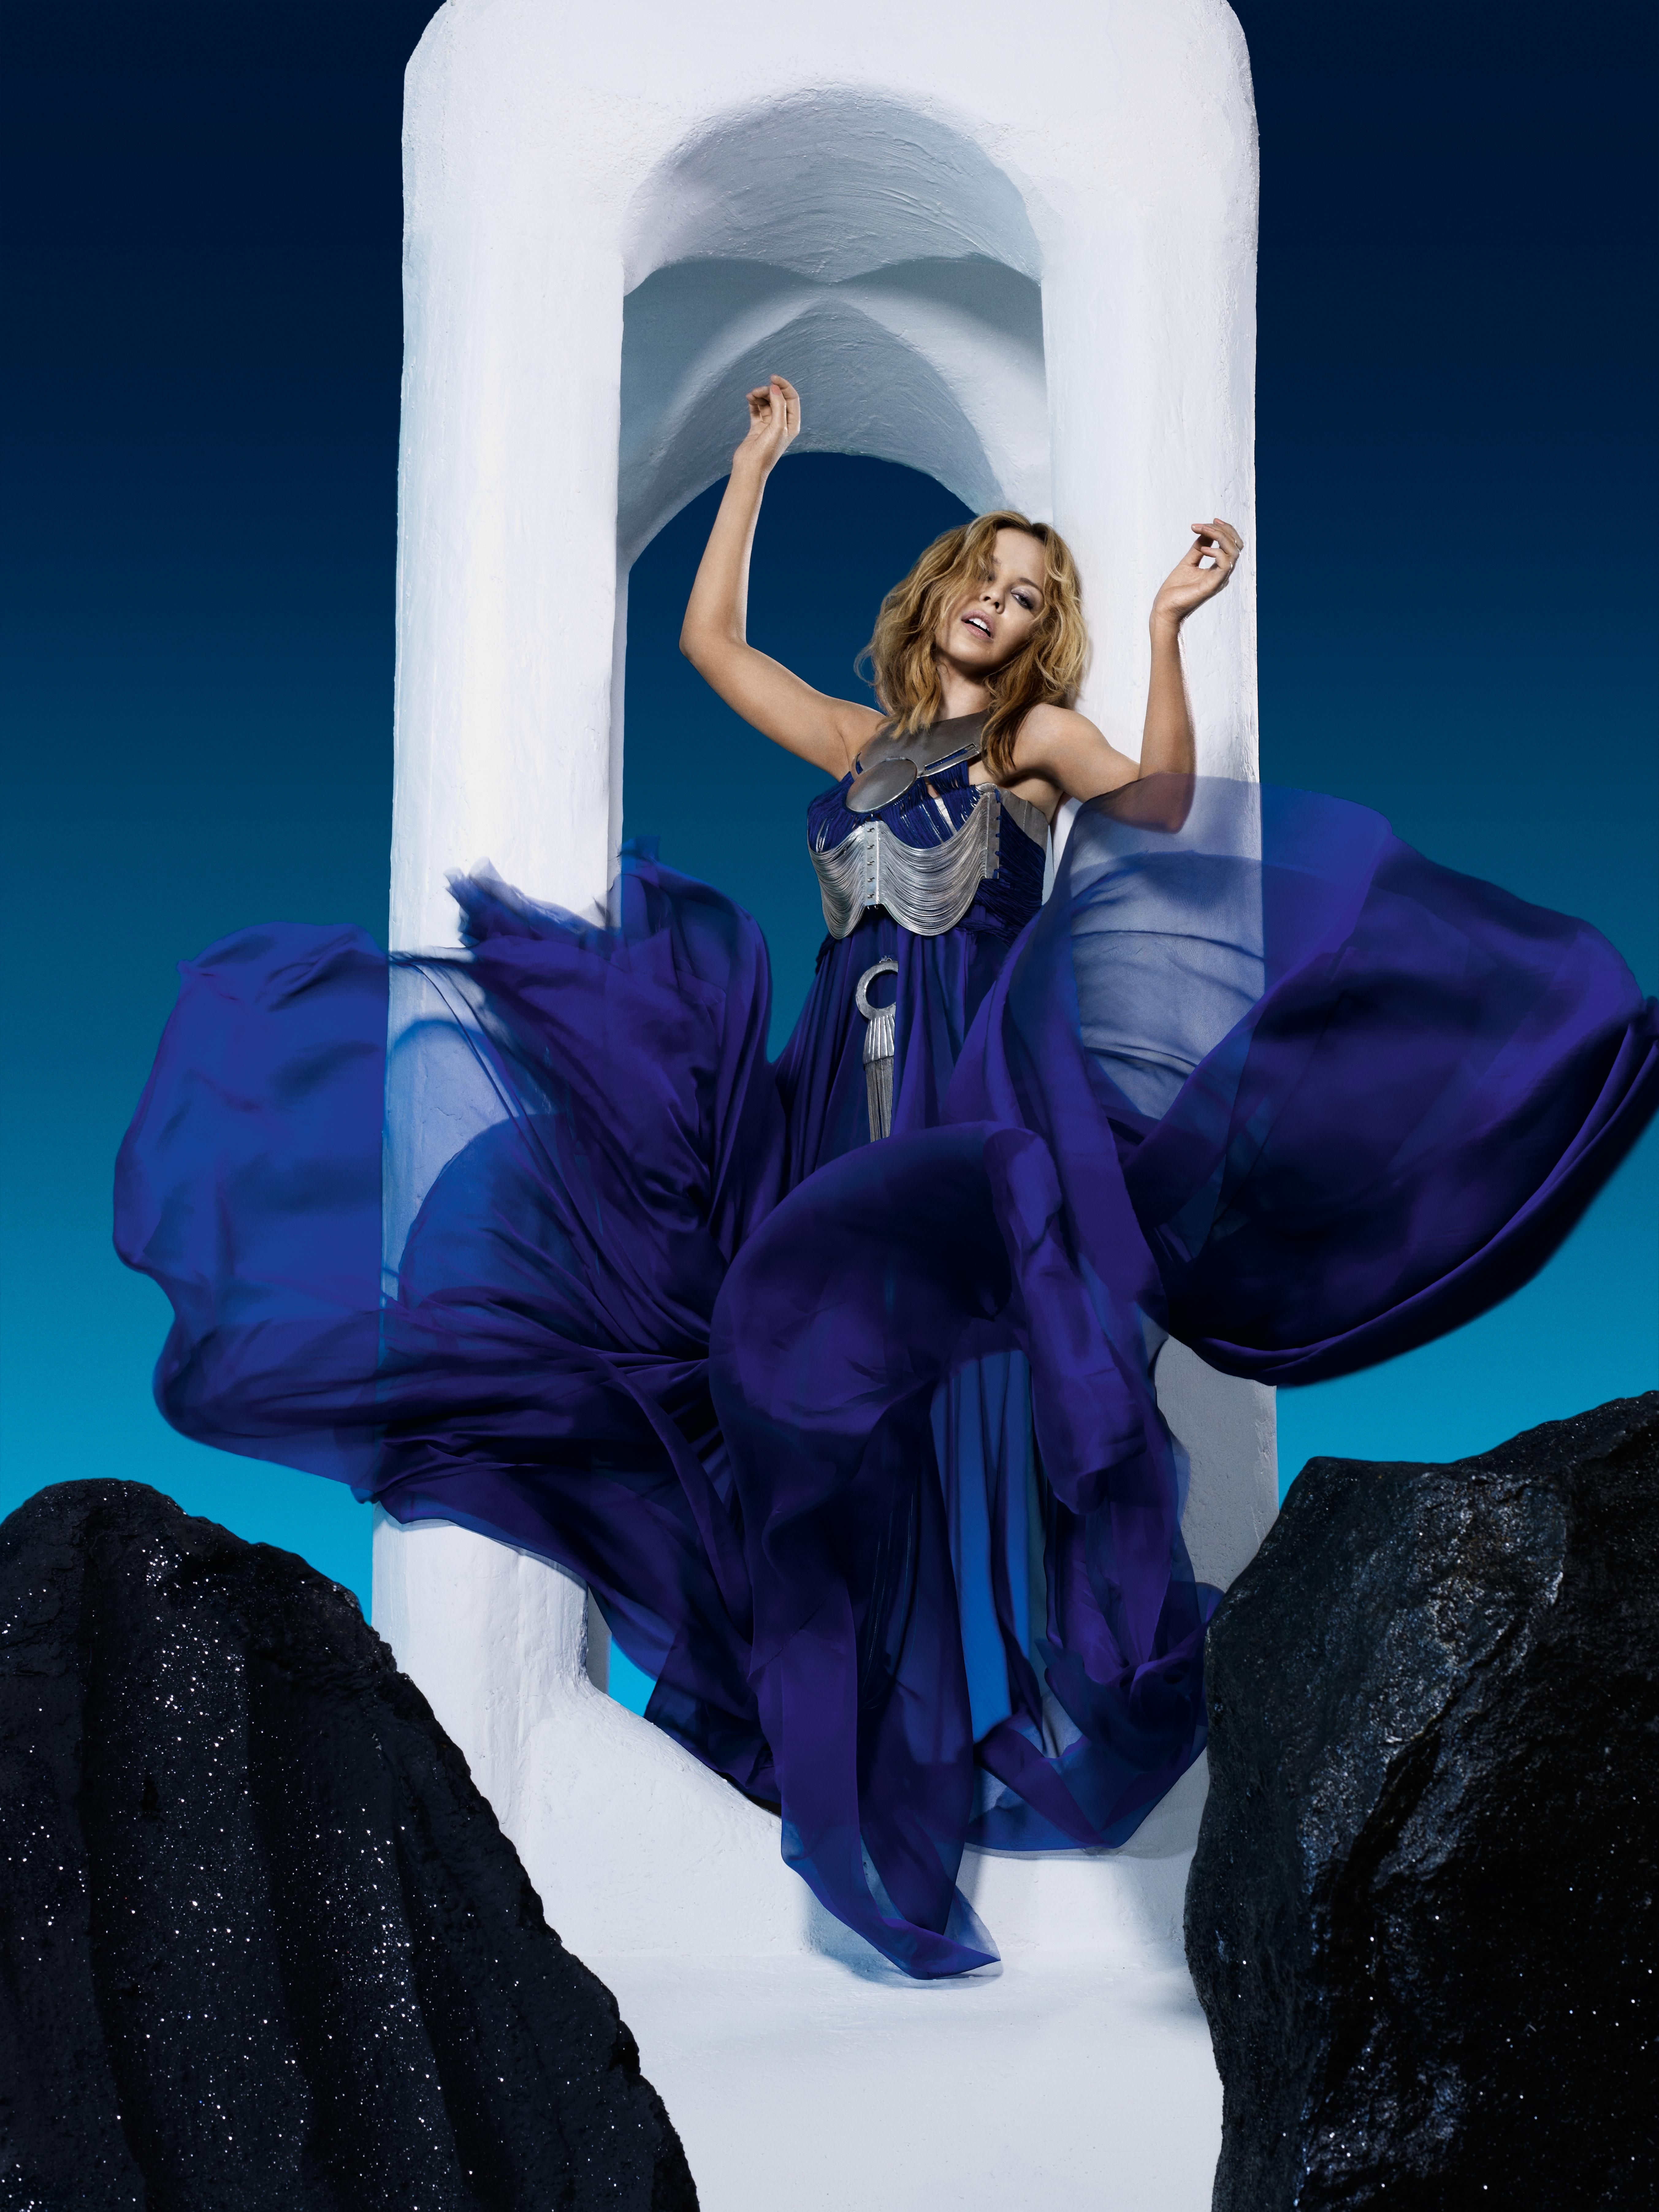 Pin by Lover_ Doll on Kylie Minogue photoshoots | Pinterest | Kylie ...